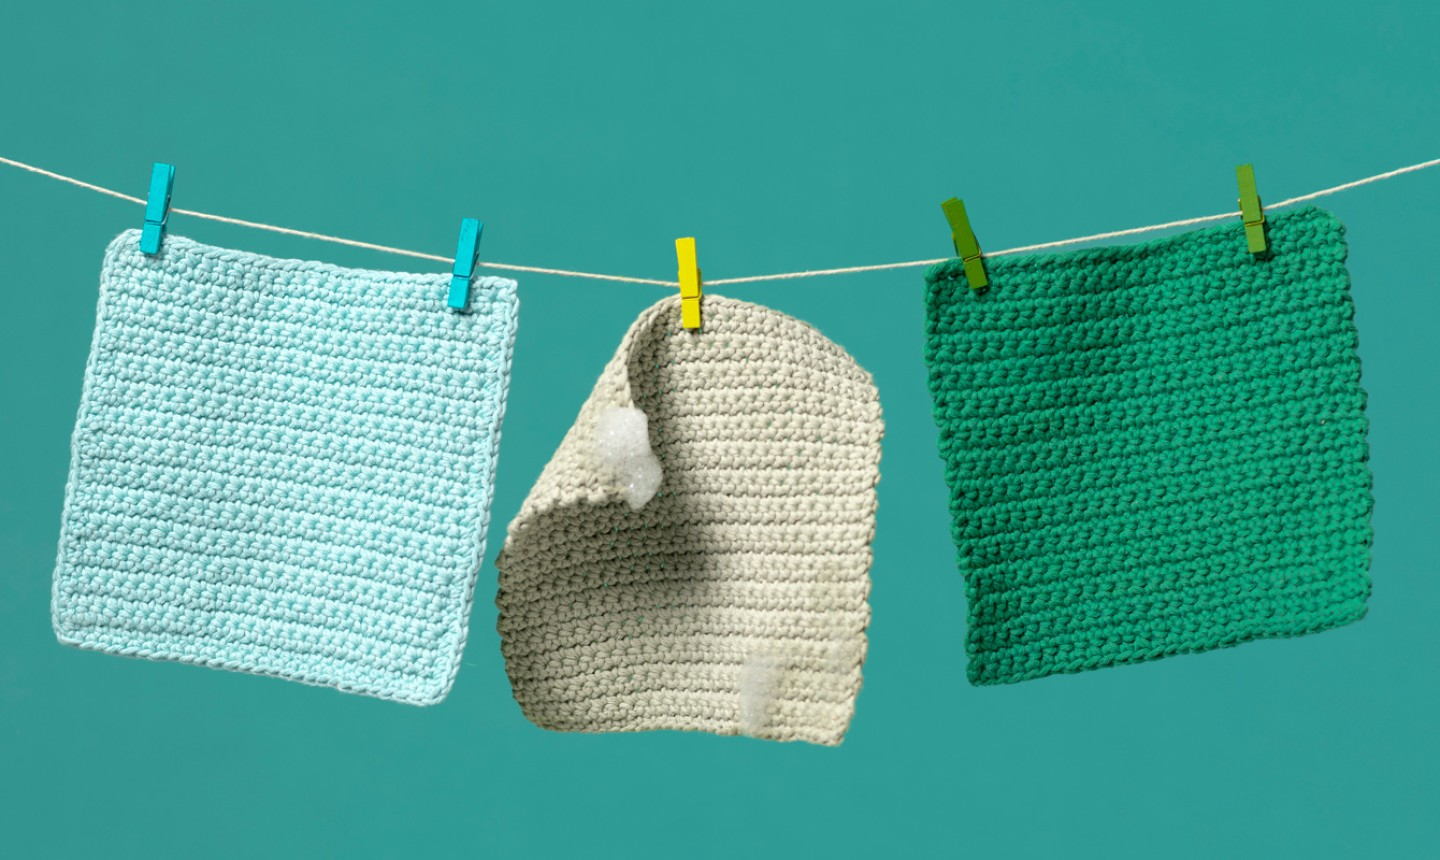 Dishcloths hanging from a line